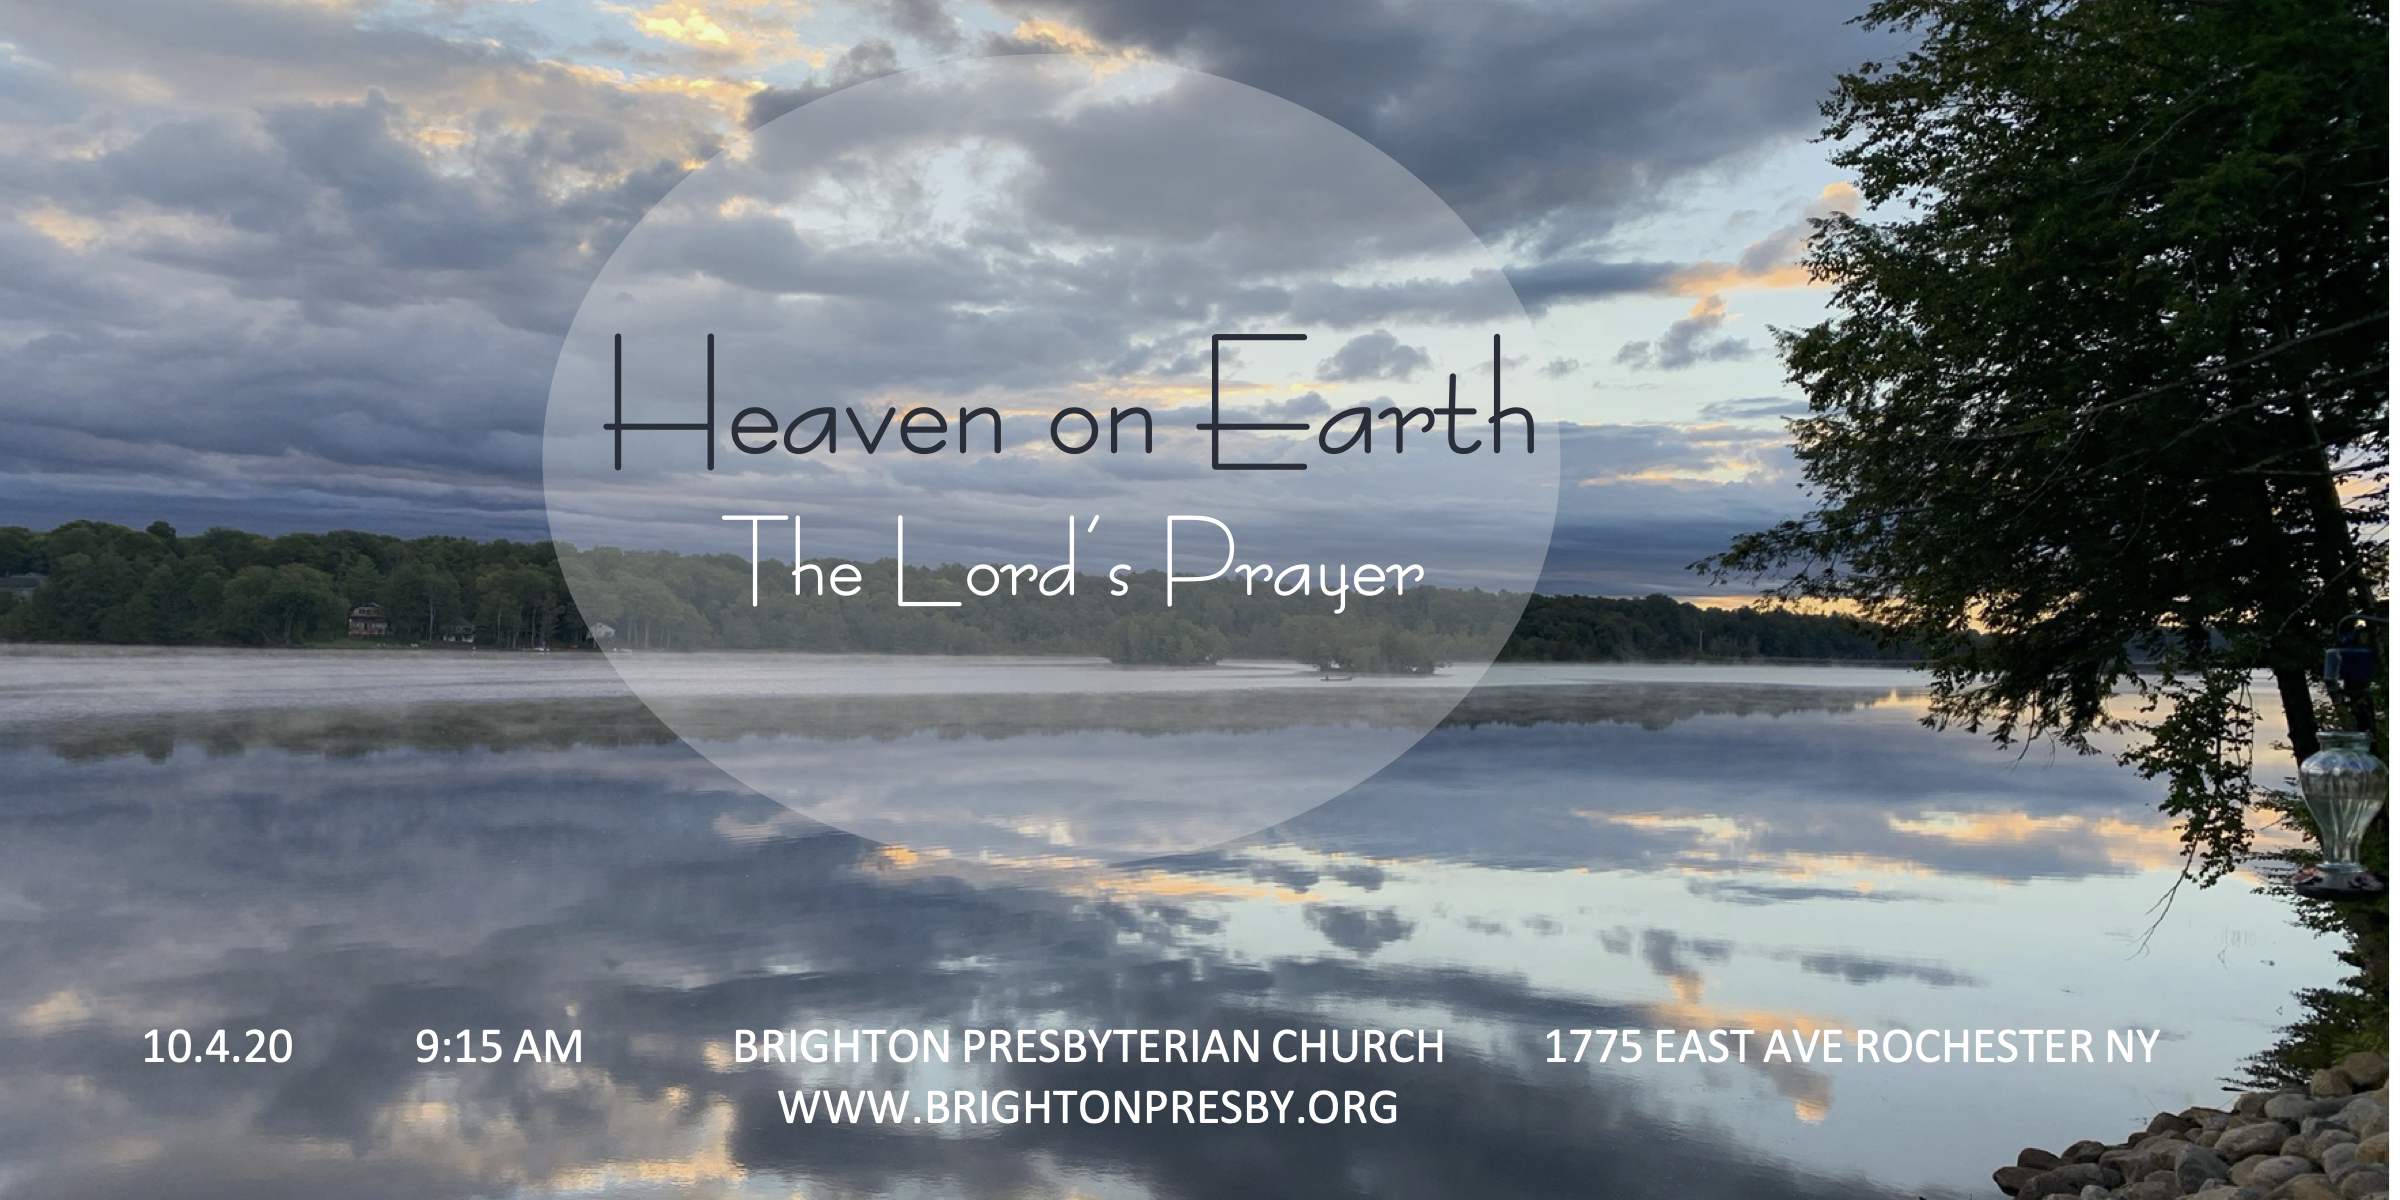 Heaven on Earth: The Lord's Prayer